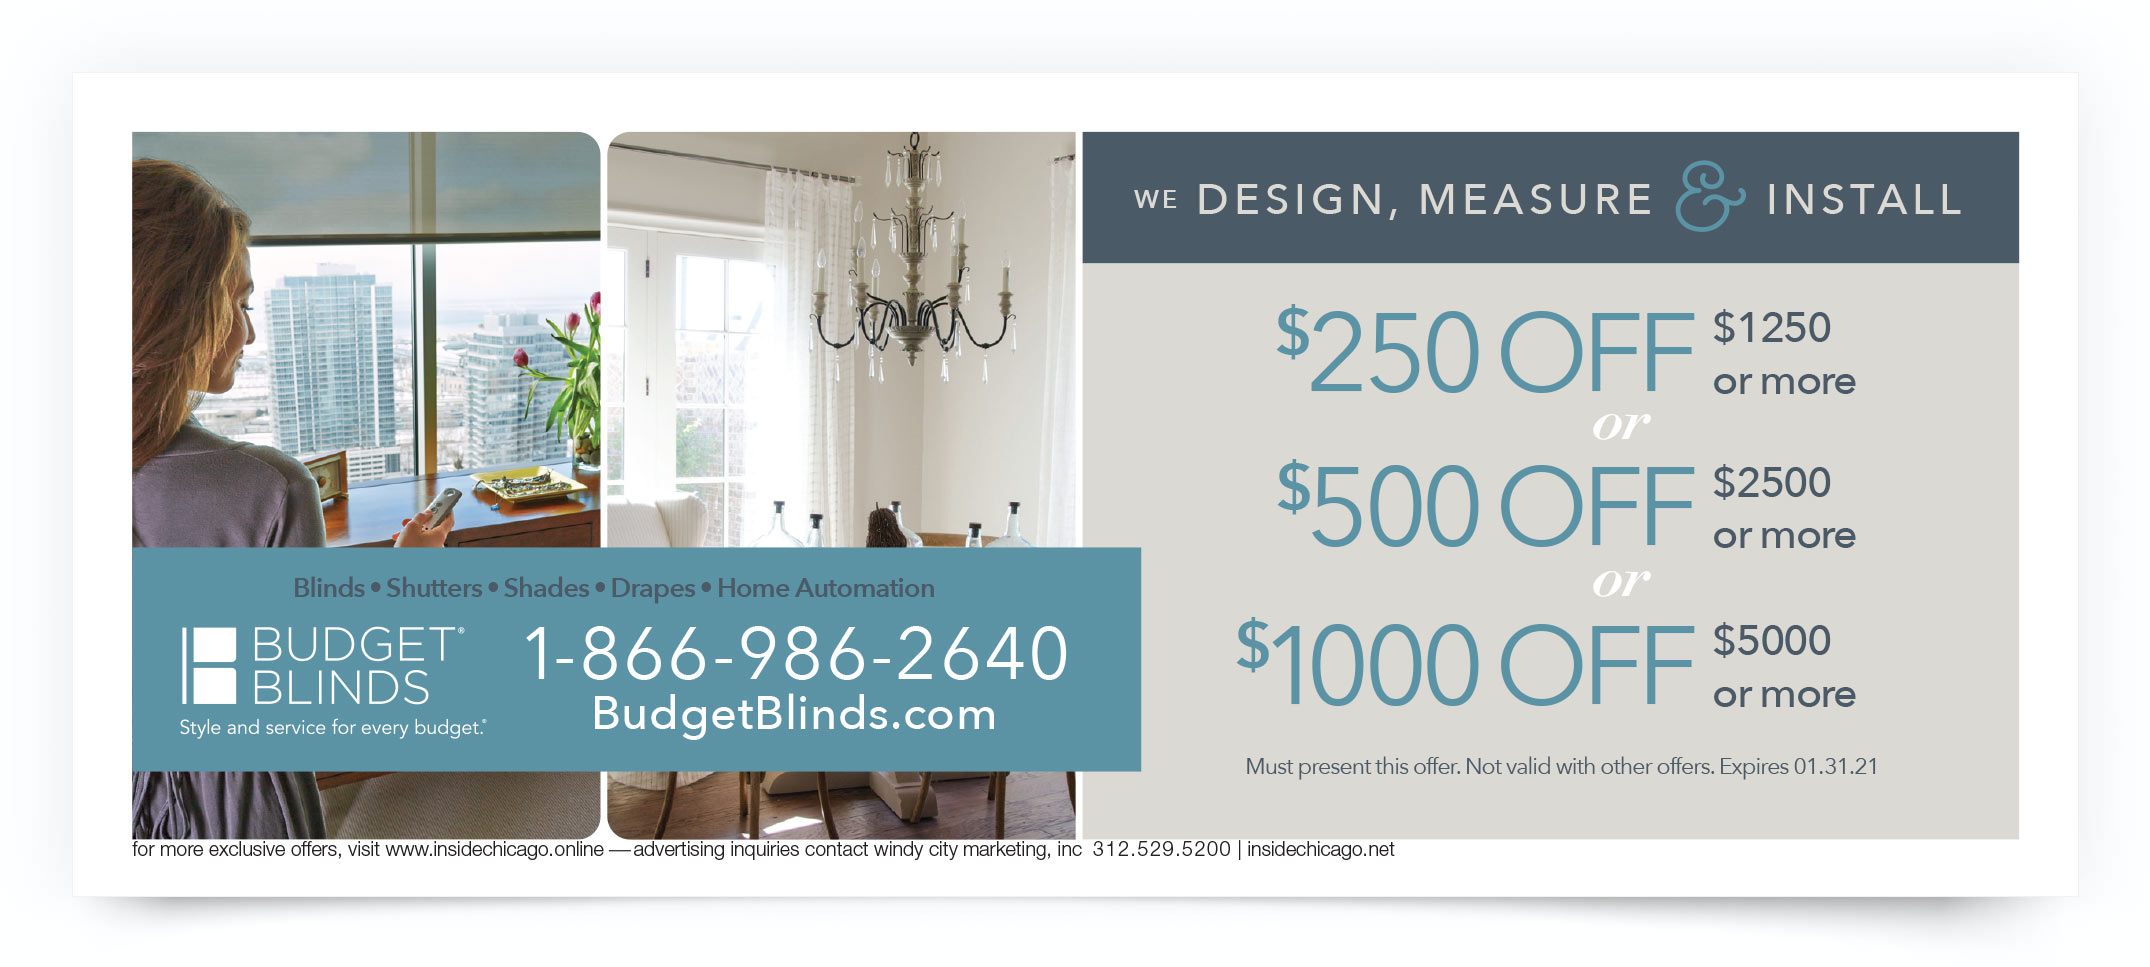 Budget Blinds Chicago Coupon Offer